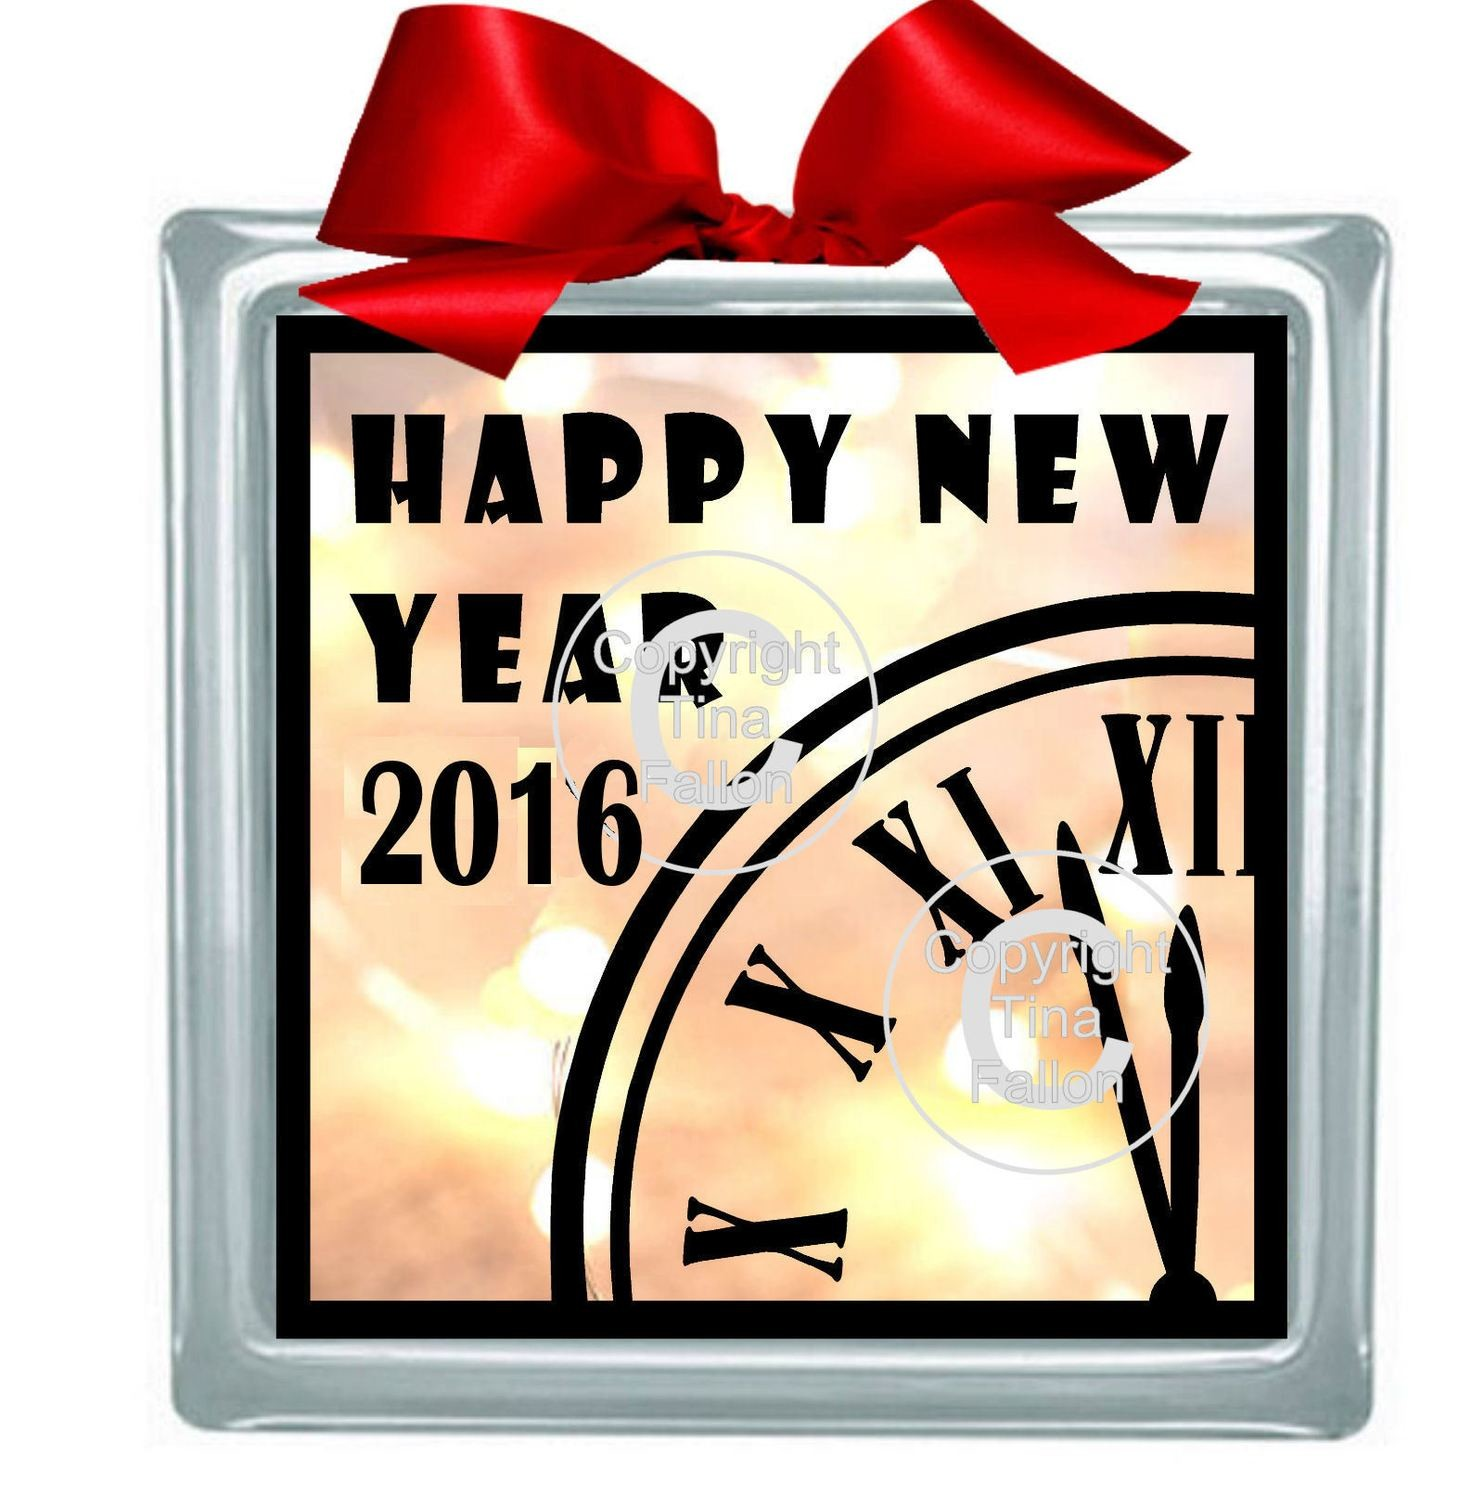 Happy New Year 2016 Glass Block Tile Design 6x6 inches